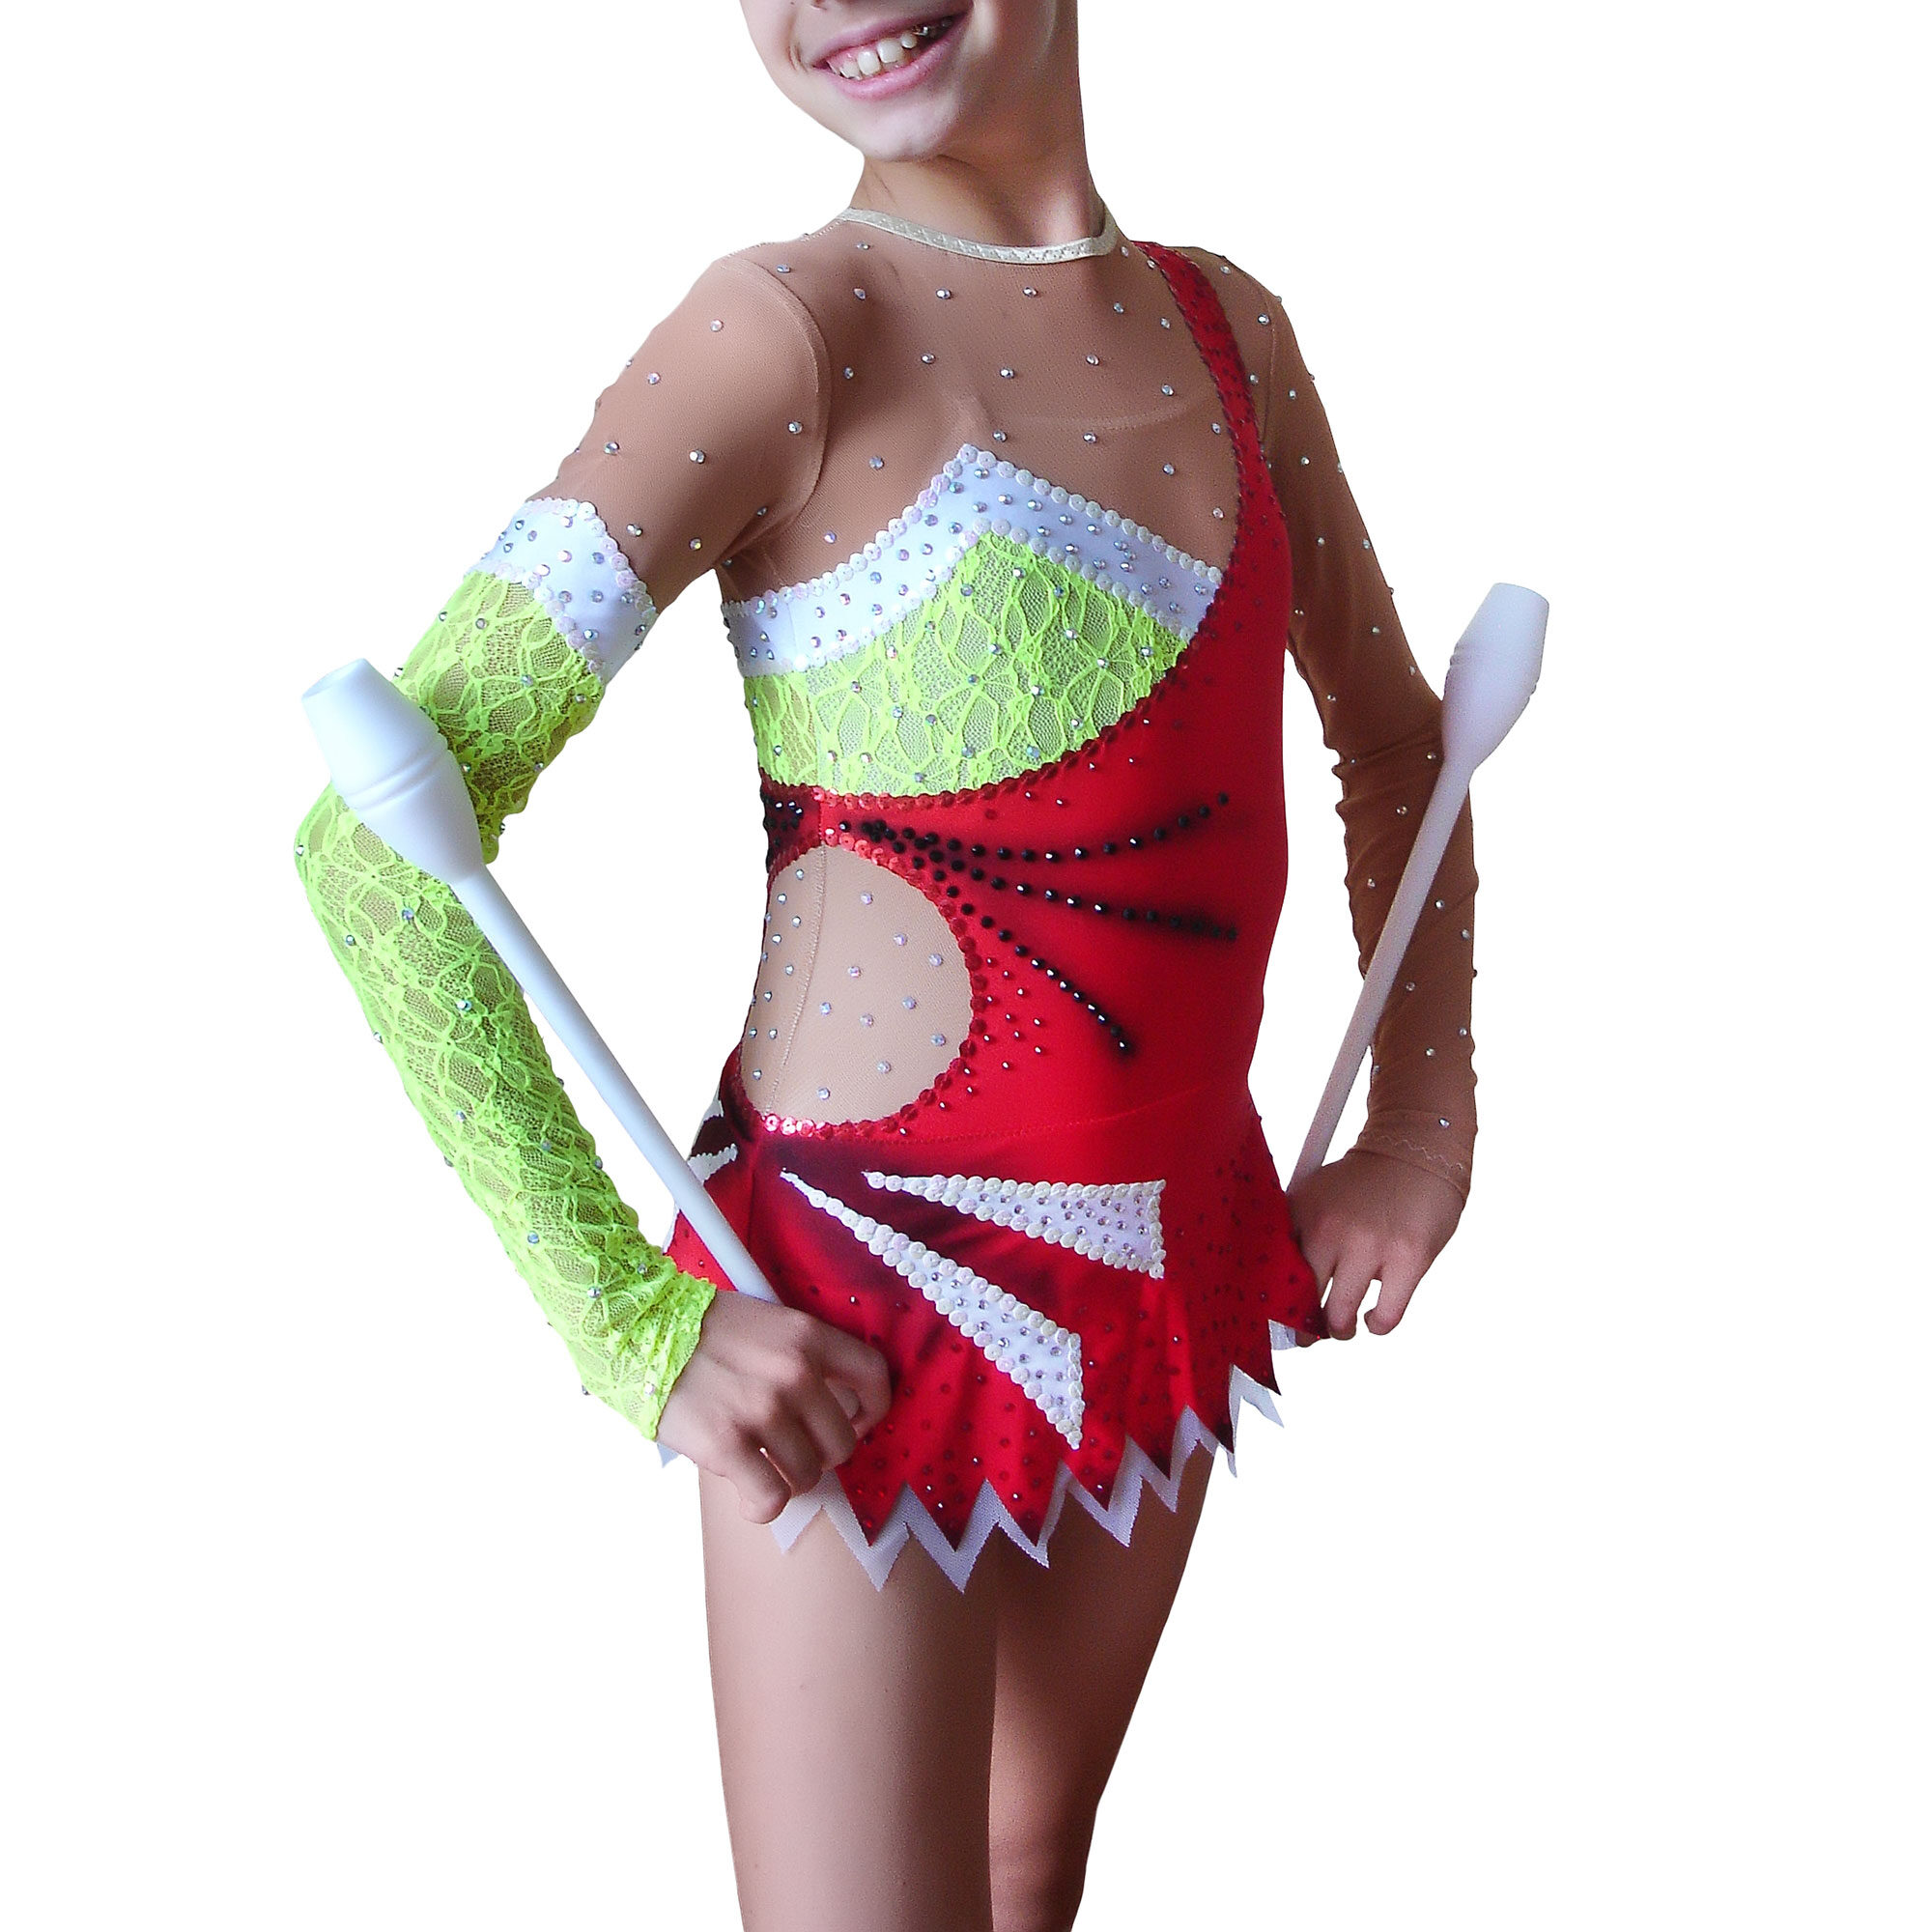 Rhythmic Gymnastics Leotard № 88 could be sewn as Dress Rhythmic Gymnastics, Ice Figure Skating Dress, Costume Acrobatic Gymnastics, Baton Twirling or Dance Leotard Suit. Decorated with lace and decorative accents